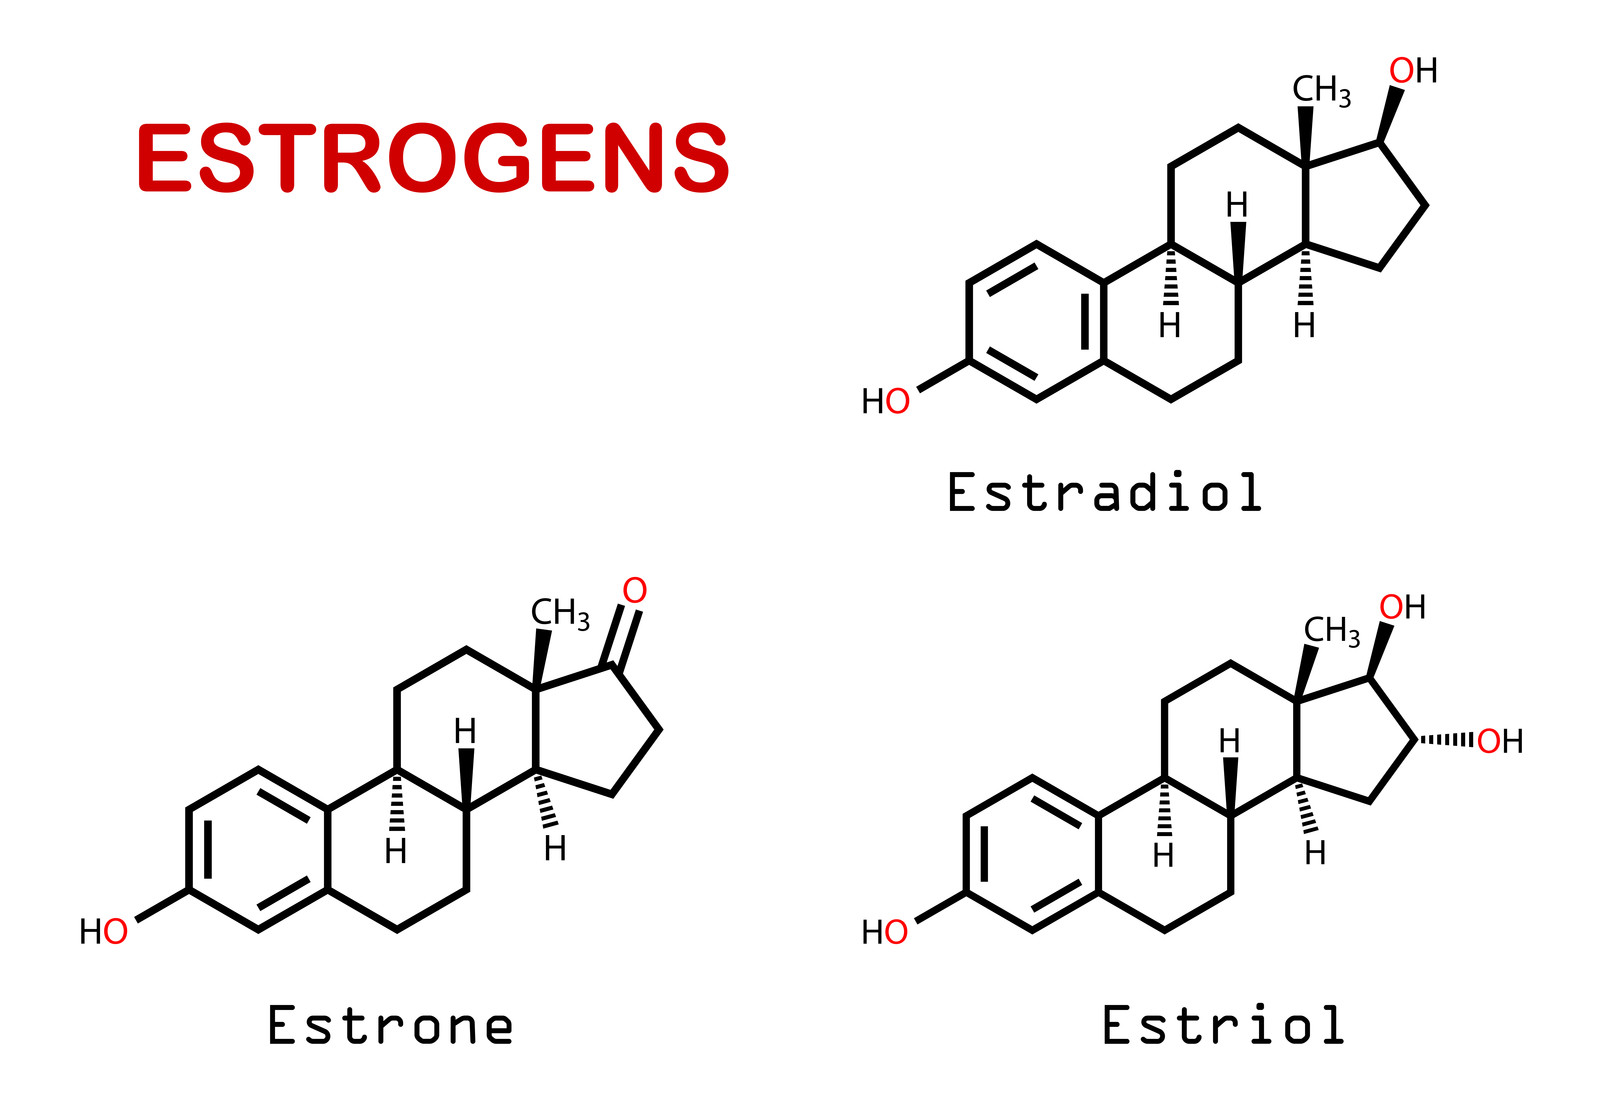 The increased amount of estrogen after a period causes glycogen (a sugar) to build up in the vaginal tissue.  Estrogen levels are highest after a period.  This can lead to yeast growth at this time.